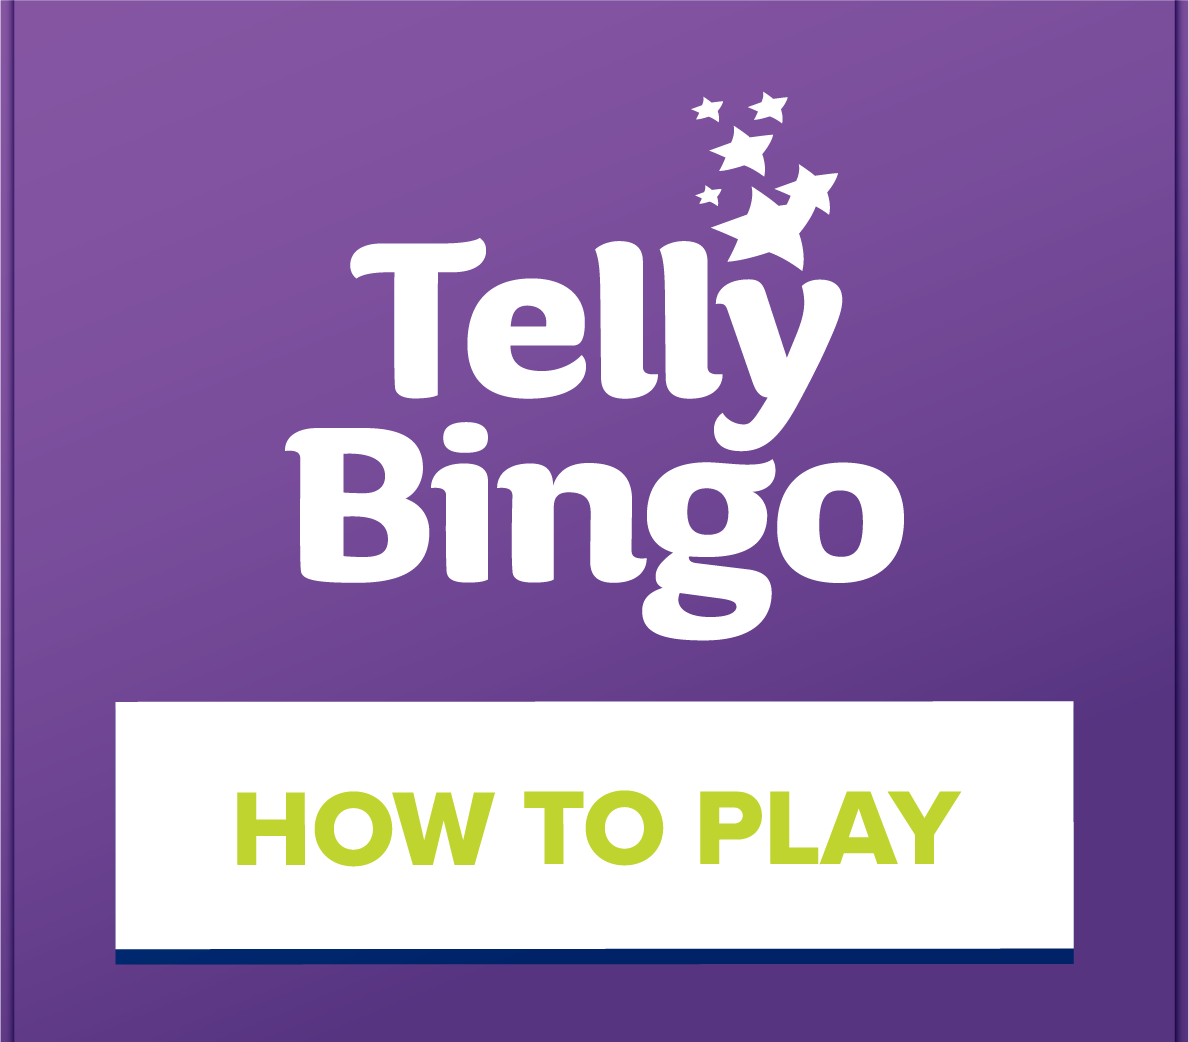 How to Play Telly Bingo